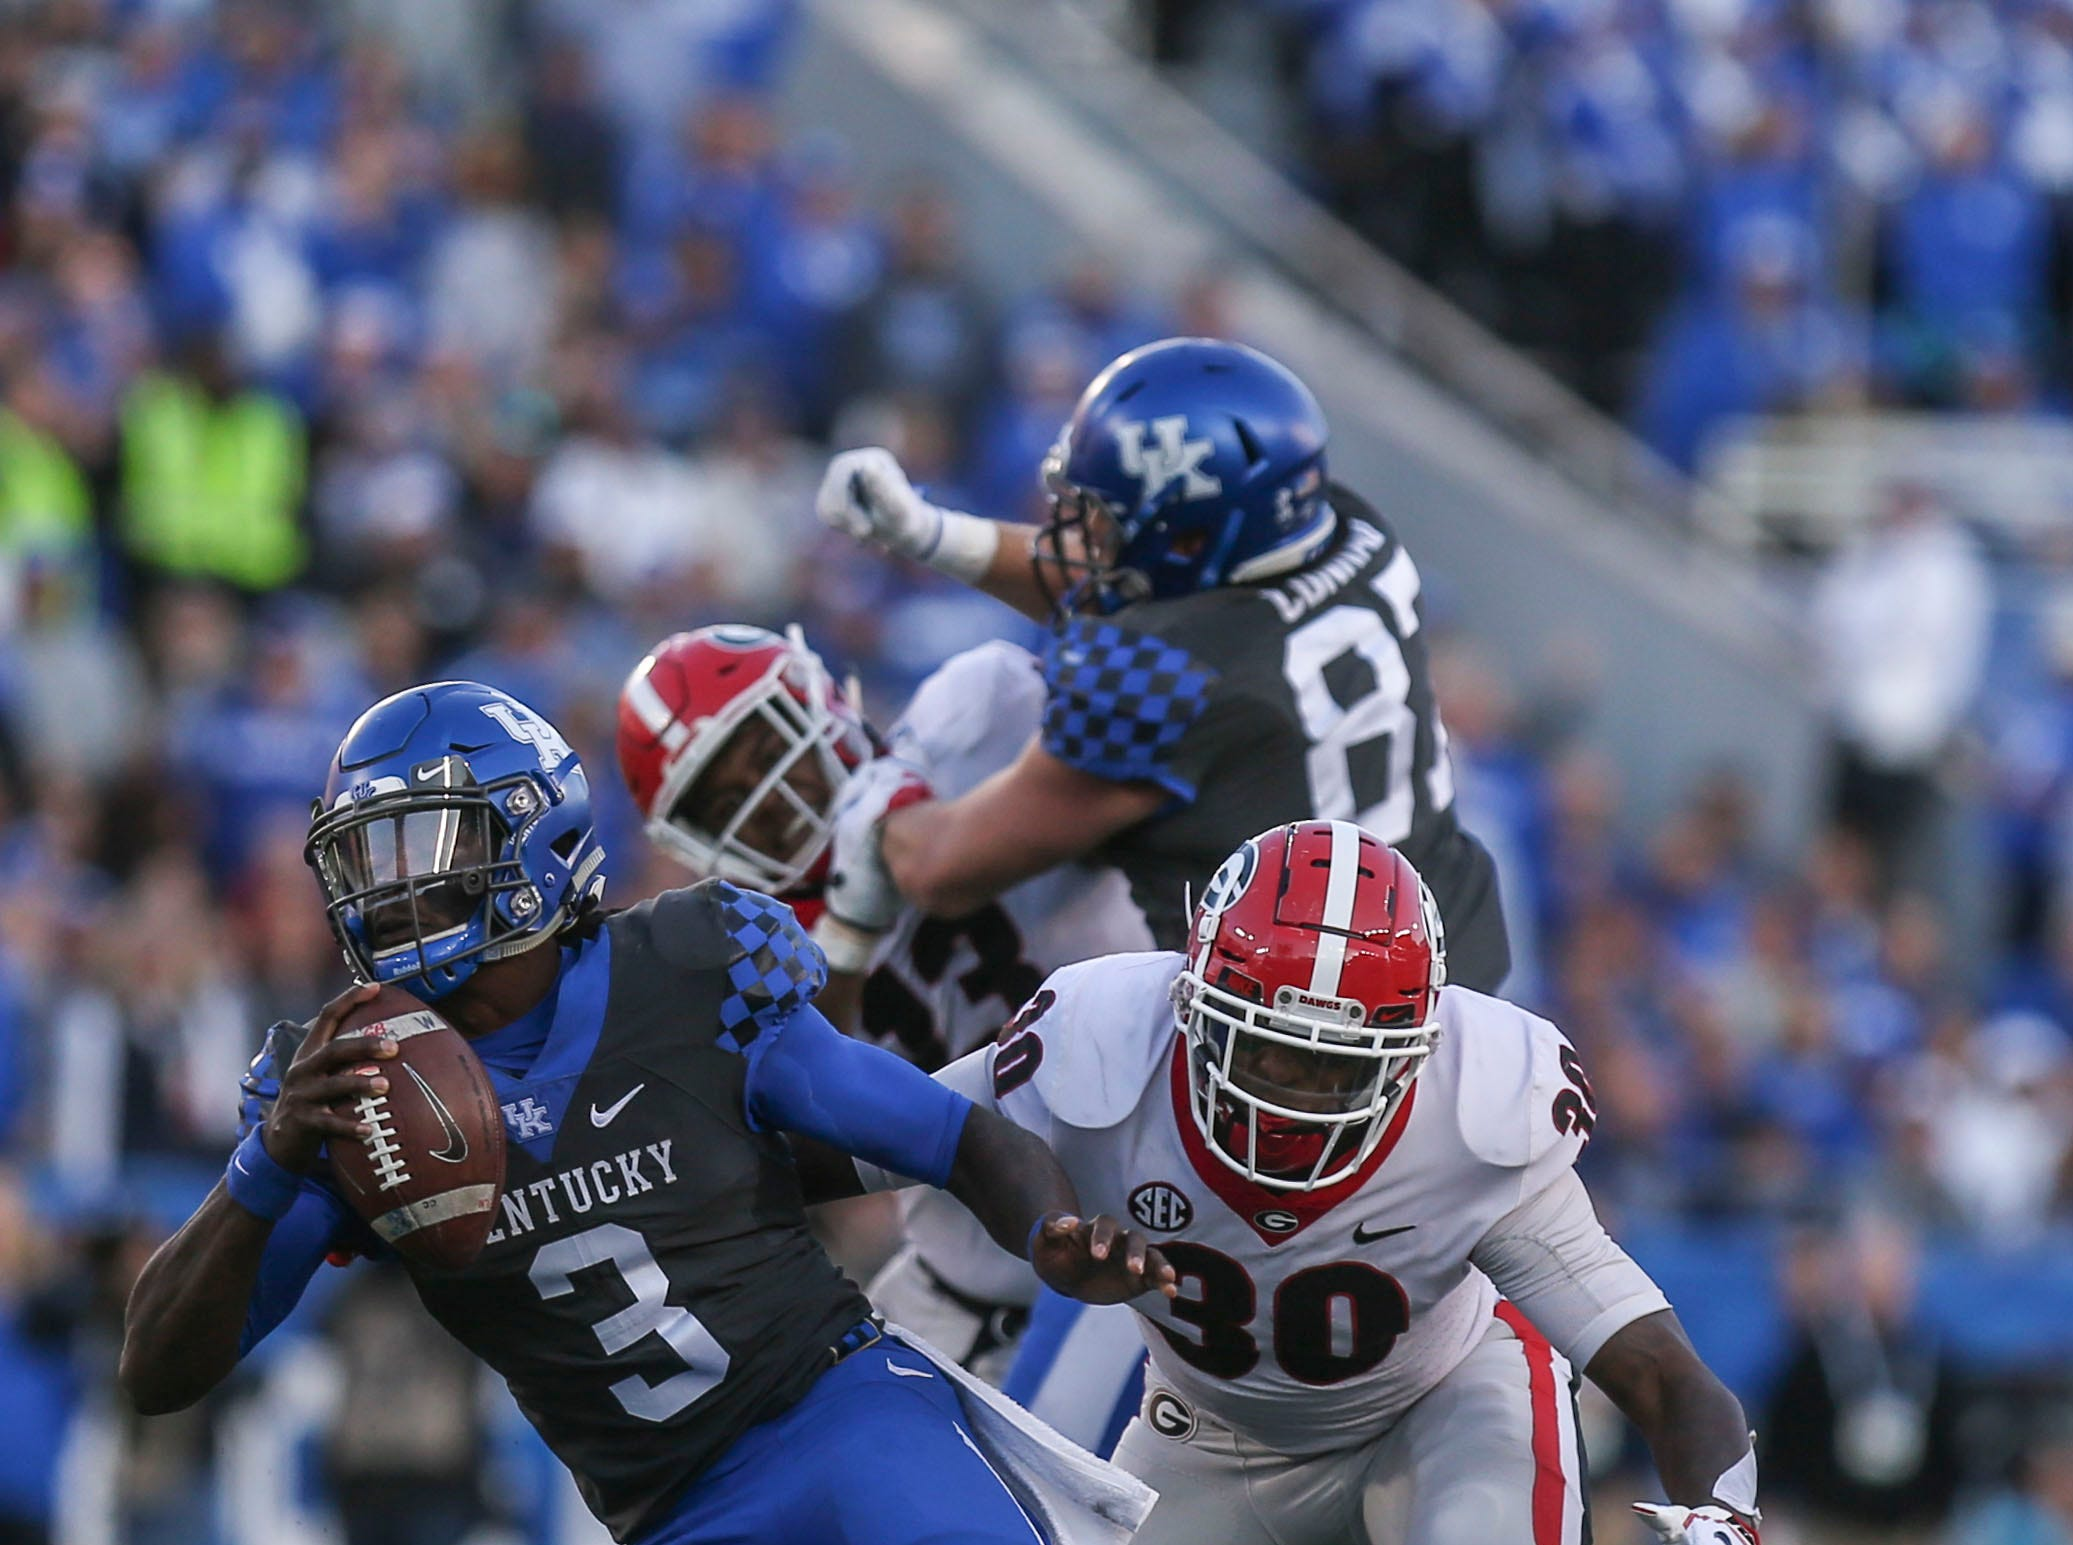 Kentucky's Terry Wilson gets pressured by Georgia's Deangelo Gibbs in the second half as the Bulldogs dogged the Wildcats 34-17 Saturday. Nov. 3, 2018